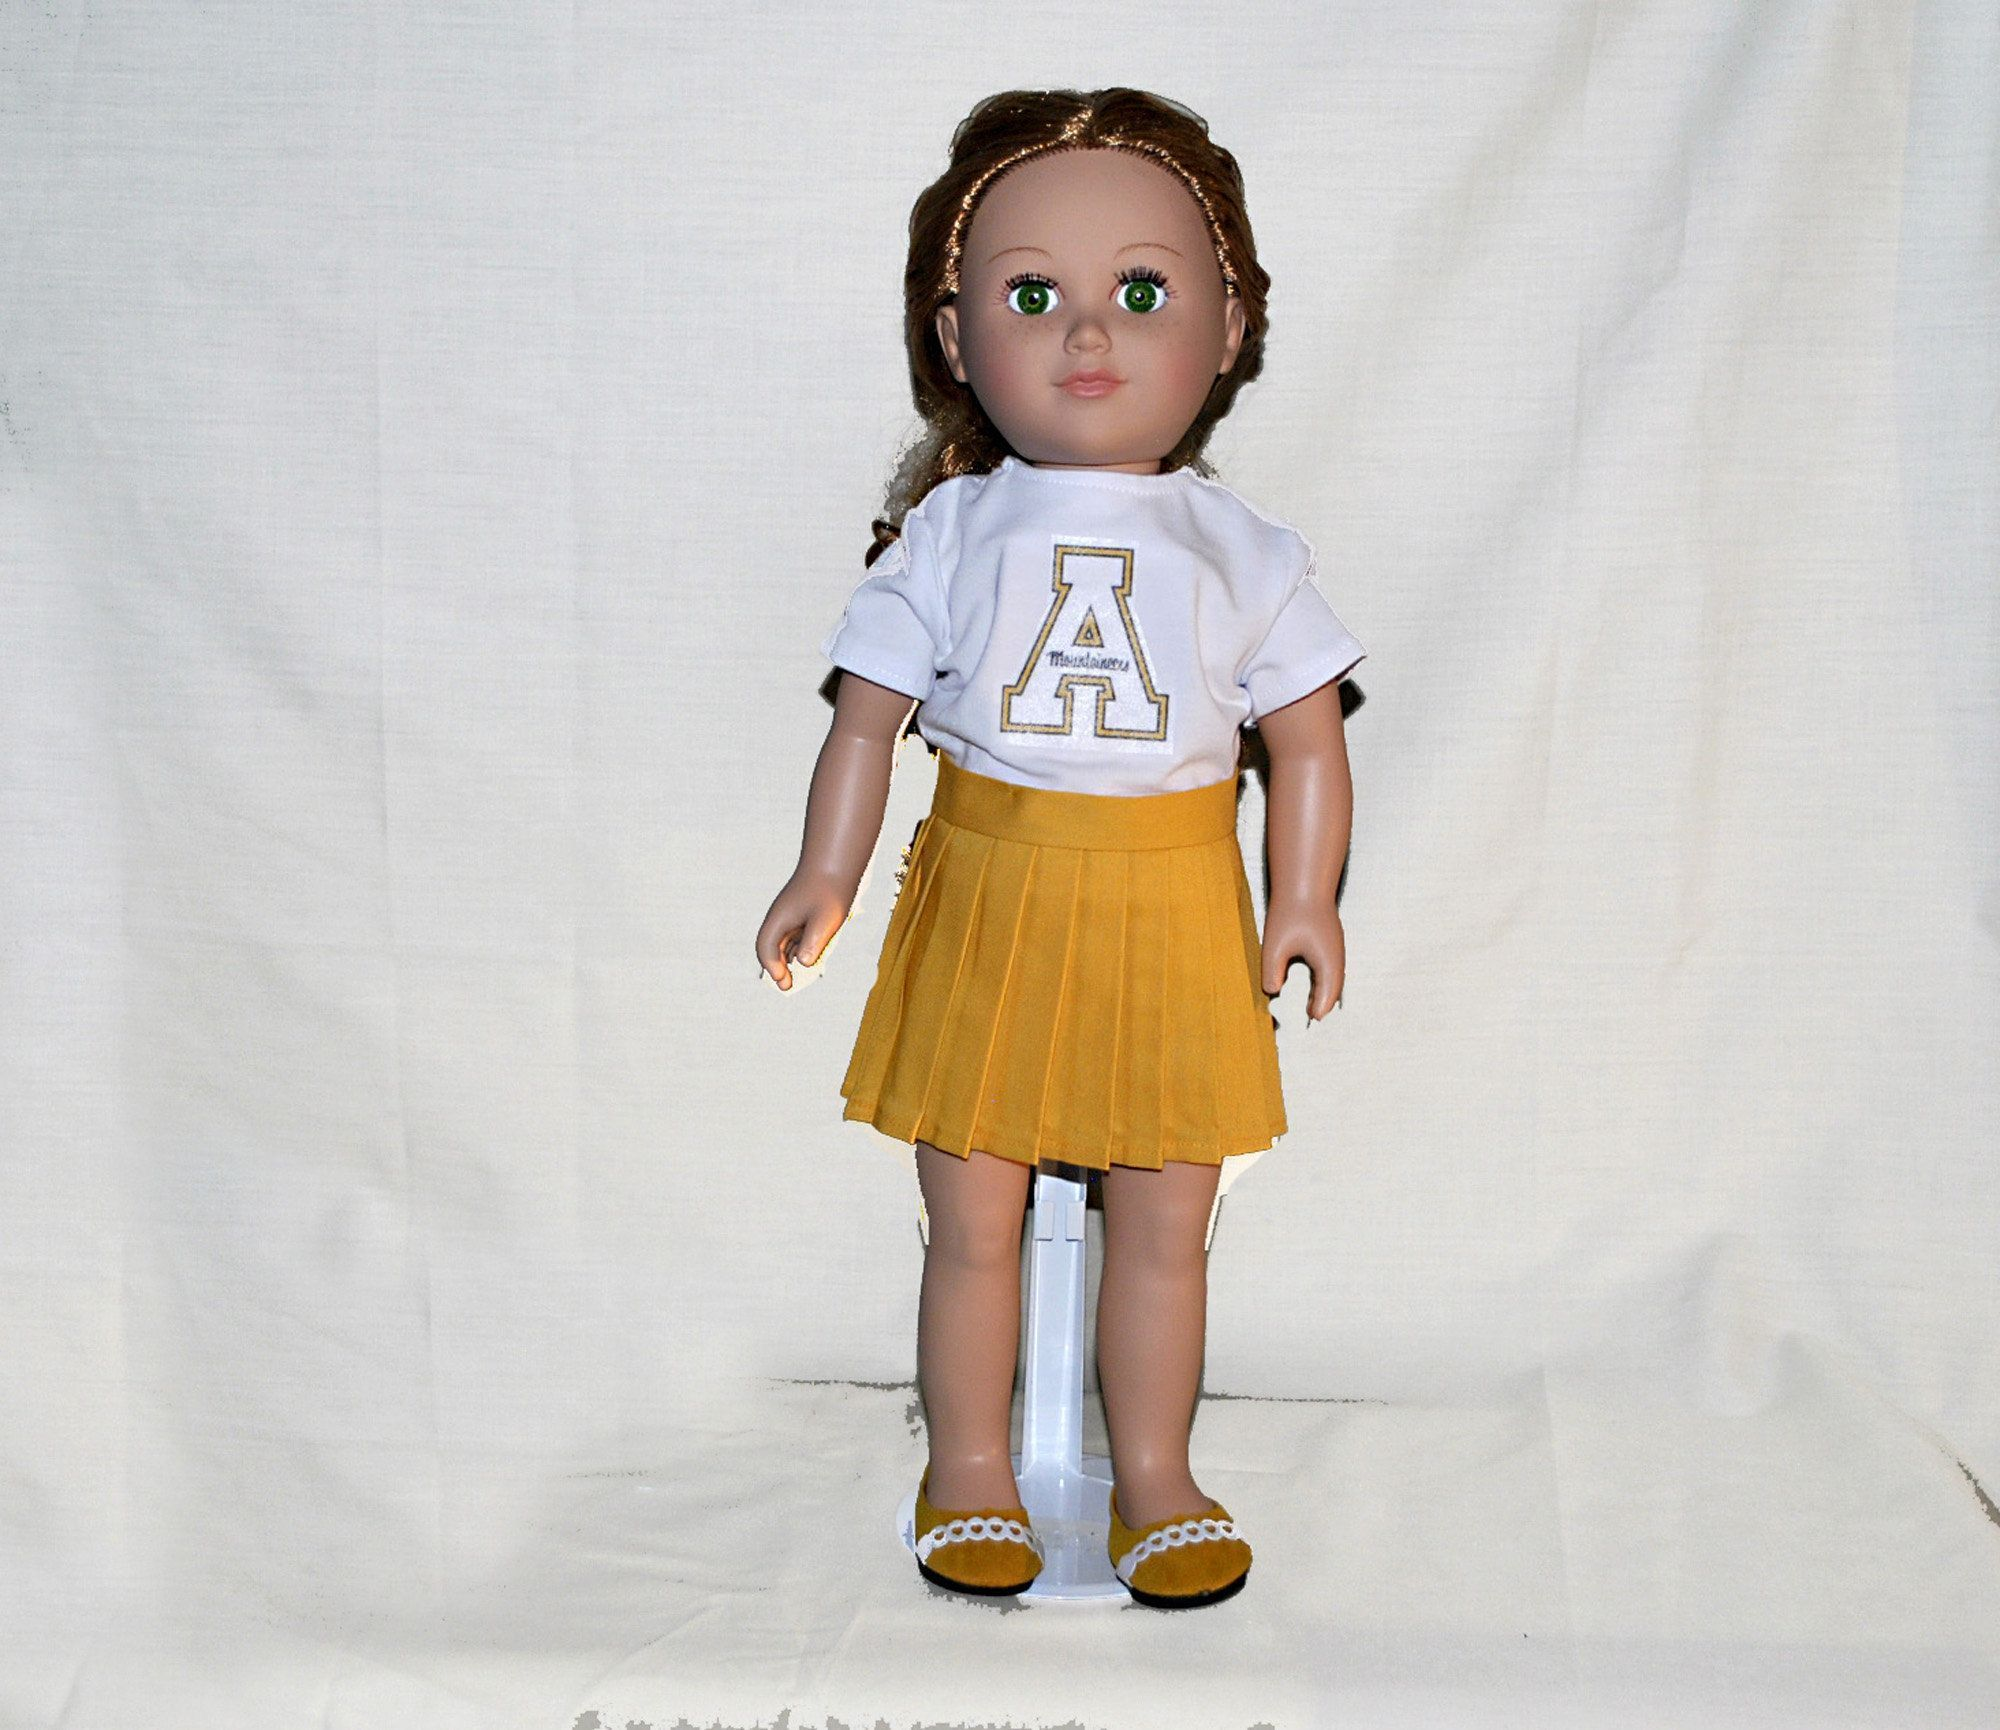 Sports Team Outfit Appalachian Cheerleader Yellow Skirt White T-shirt like American Girl #18inchcheerleaderclothes Appalachian Cheerleader sports team outfit costume for 18 inch American Made Girl Doll, Yellow Skirt, White T-shirt, Sneakers, Journey Girl, My Life, Our Generation Yellow Pleated skirt White T-shirt shoes Panties -The item in the picture will be the item you receive. -Doll clothes were sewn in a pet and a smoke free environment. -The doll and hair accessories (unless listed) is not #18inchcheerleaderclothes